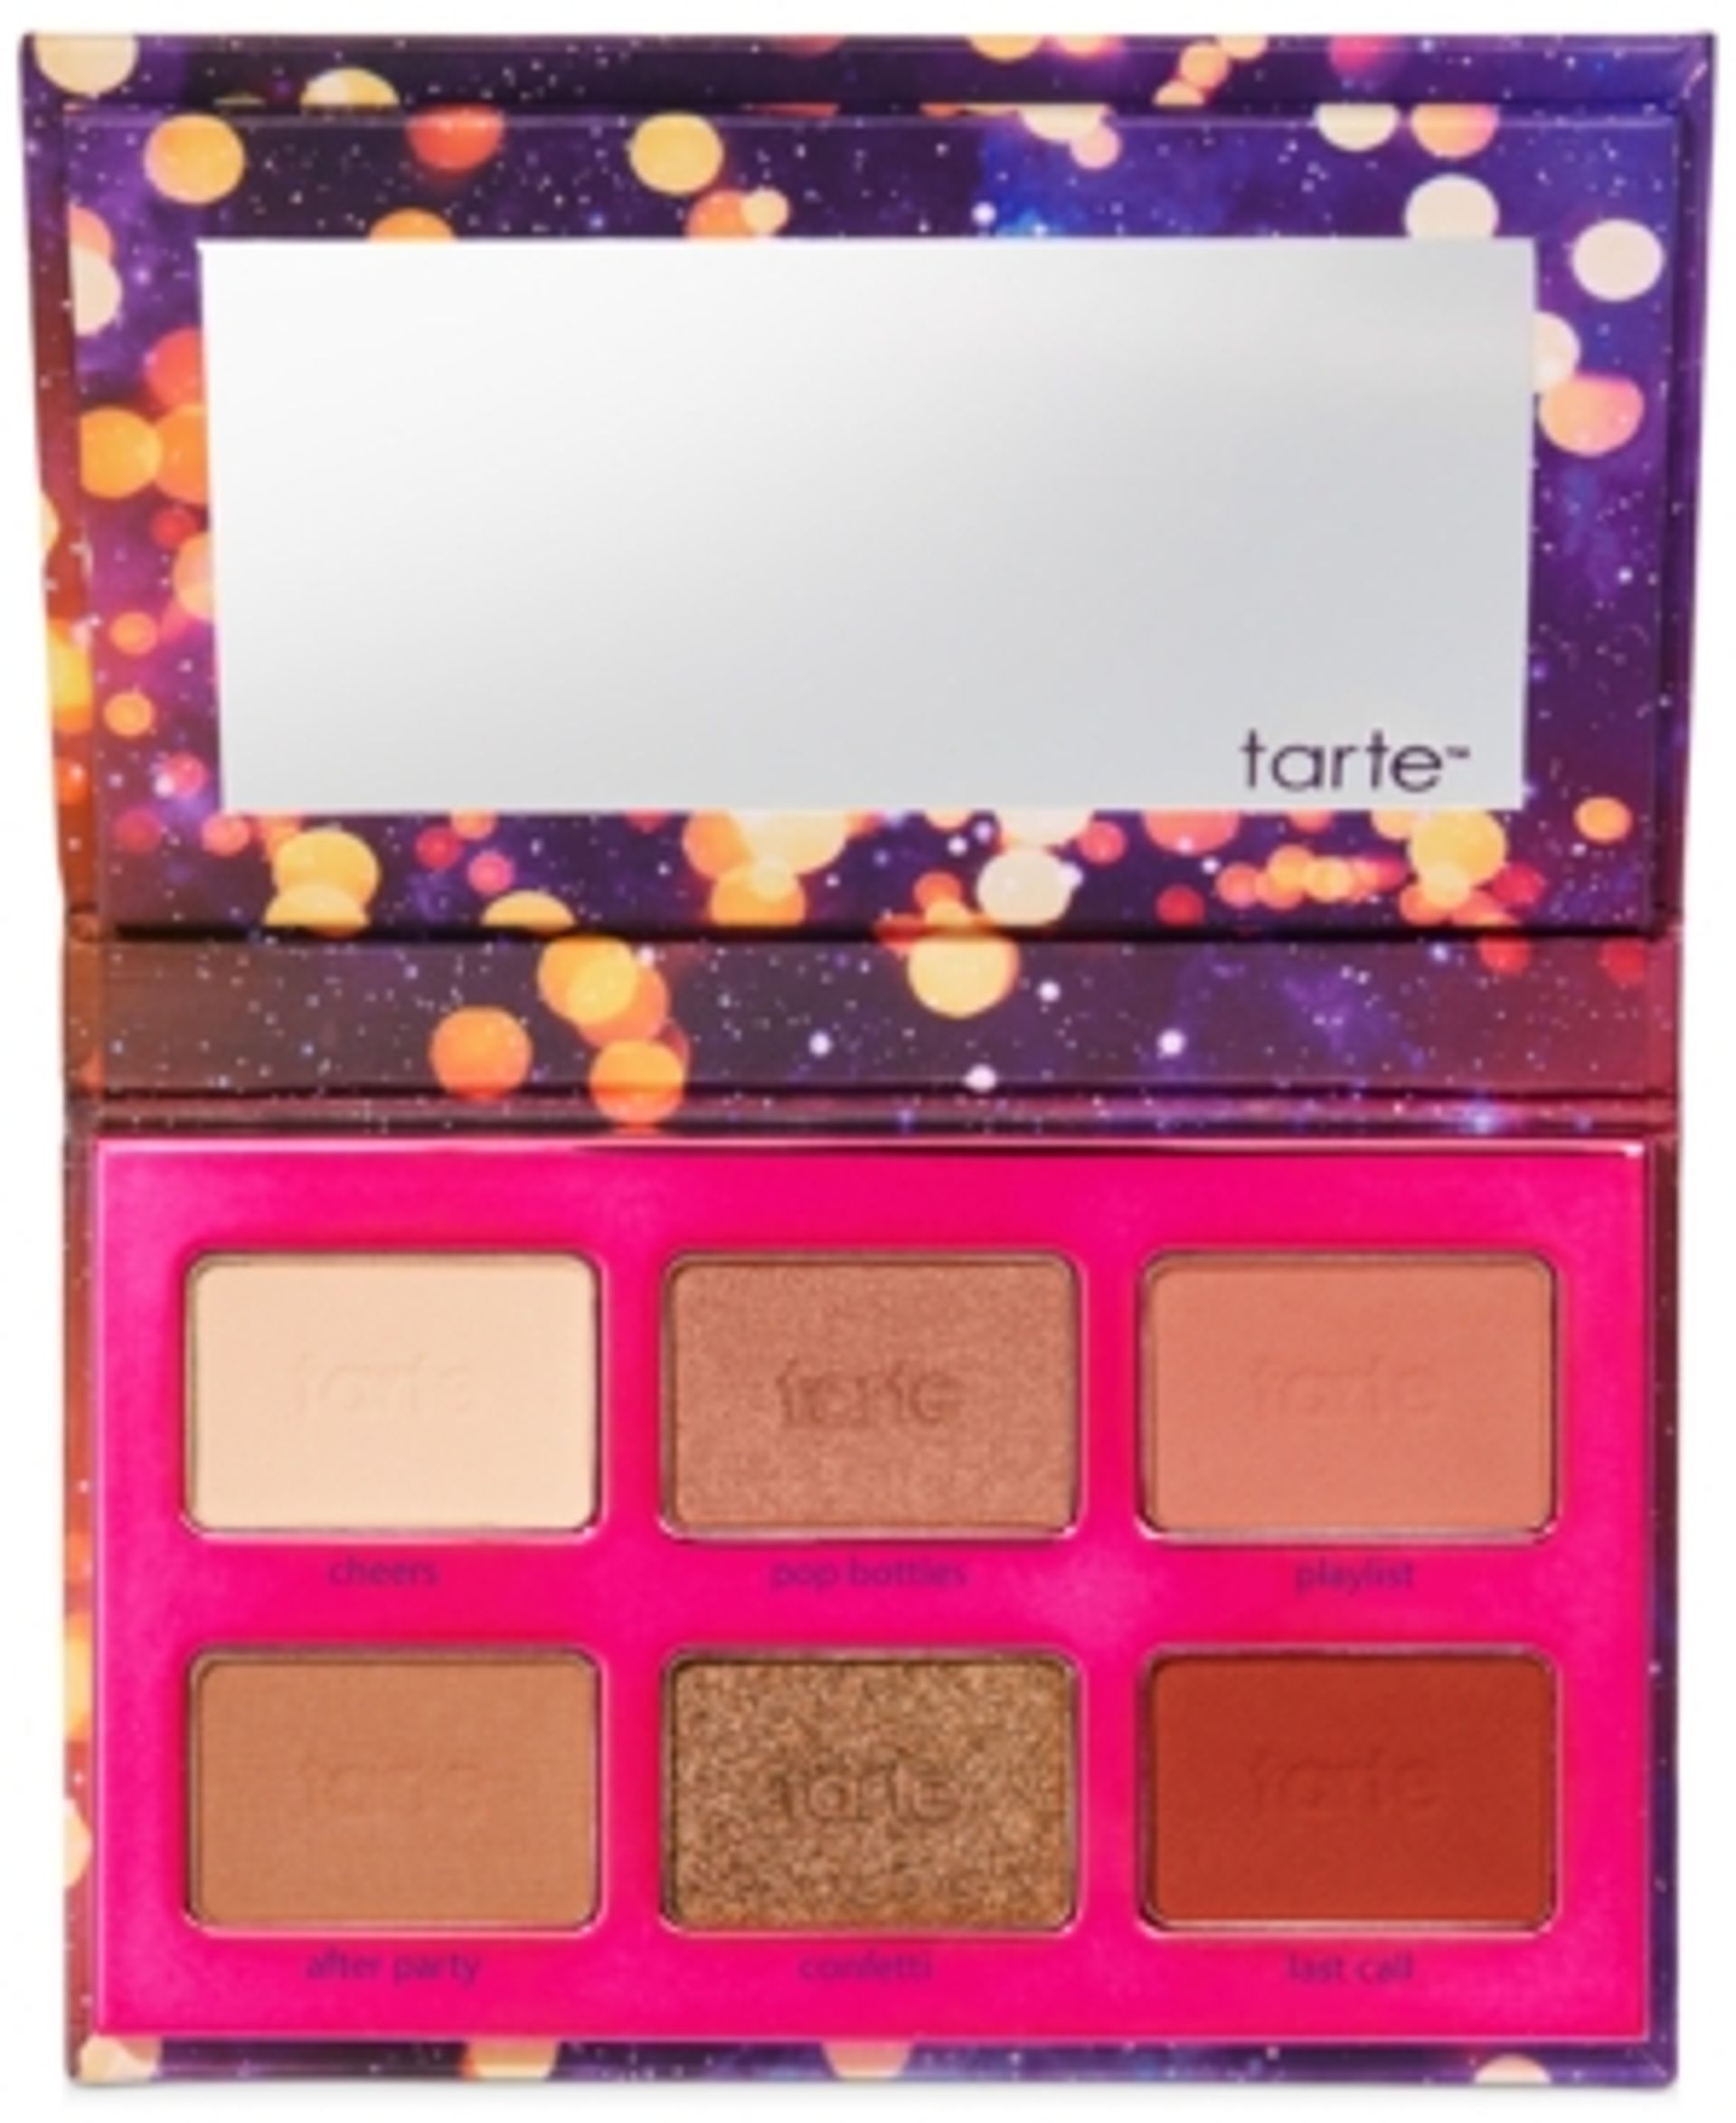 Tarte Tartelette Party Amazonian Clay Eyeshadow Palette   Macys